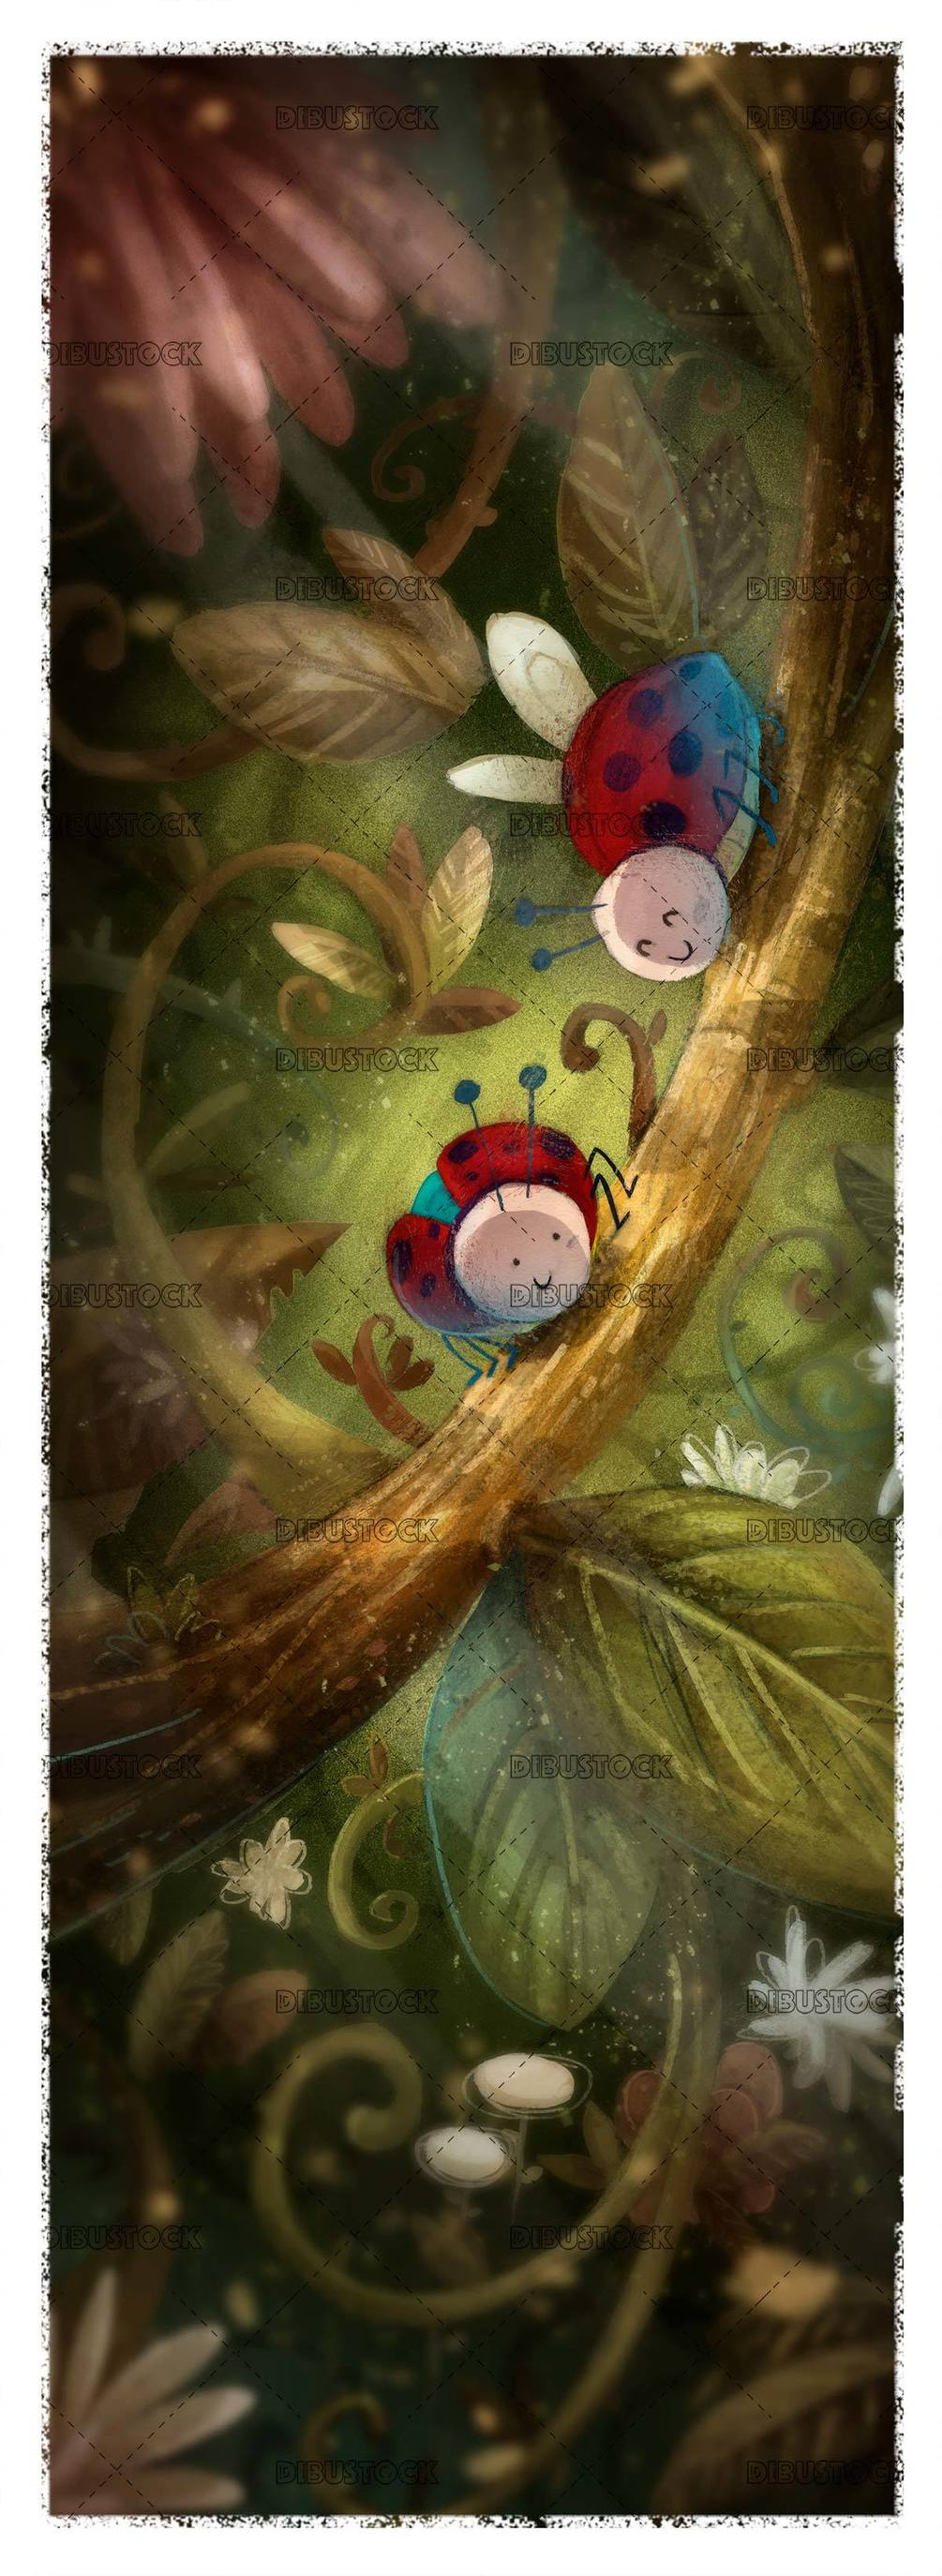 two ladybugs on a branch in the middle of the forest